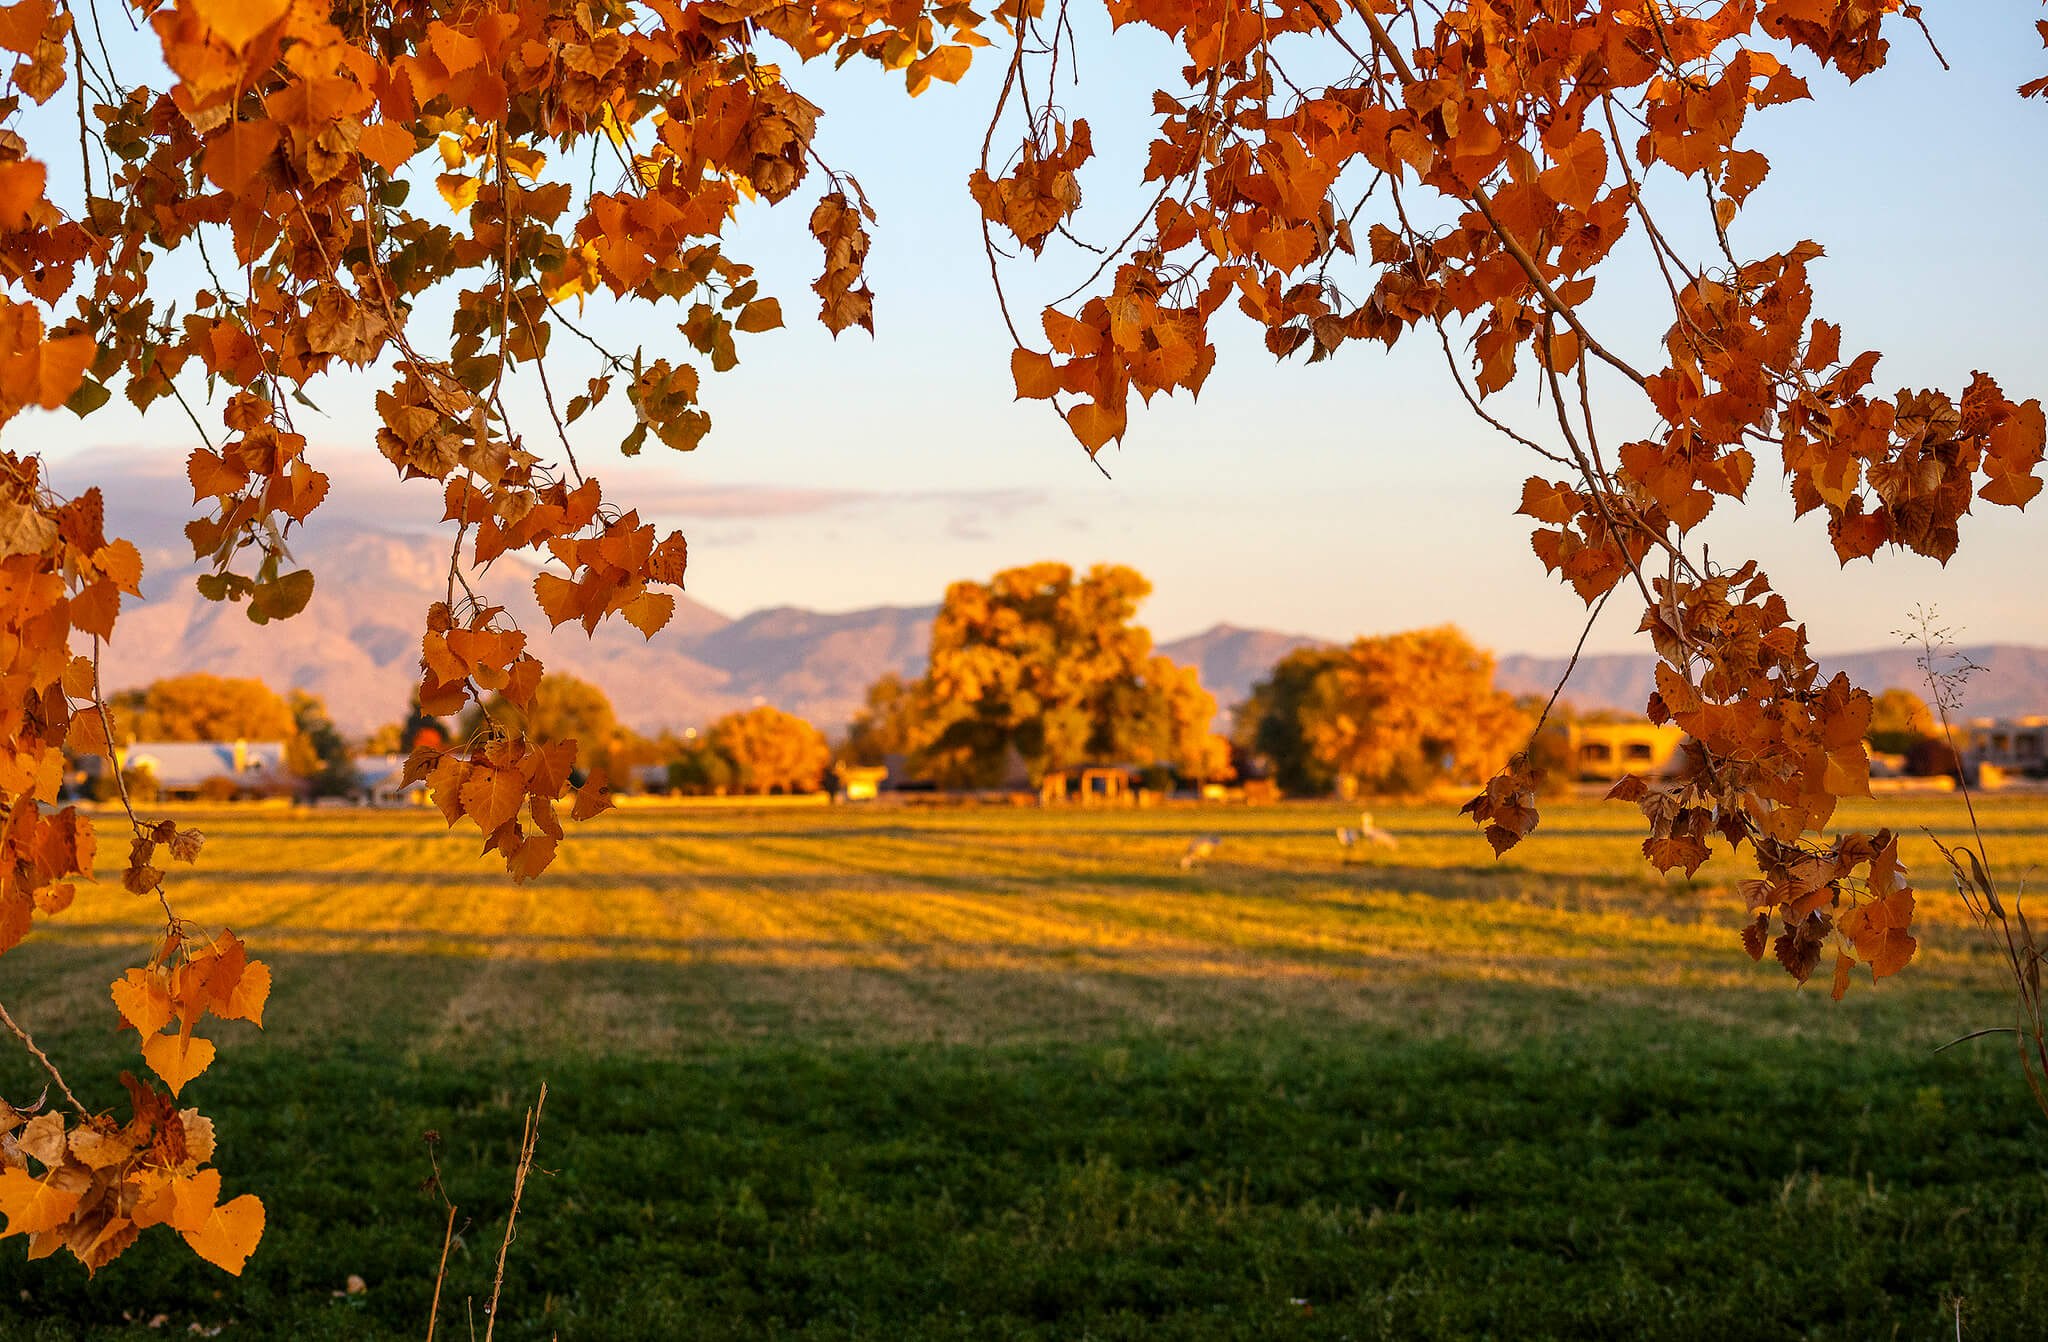 Los Poblanos farms near Albuquerque, New Mexico - Photo by Grant Condit